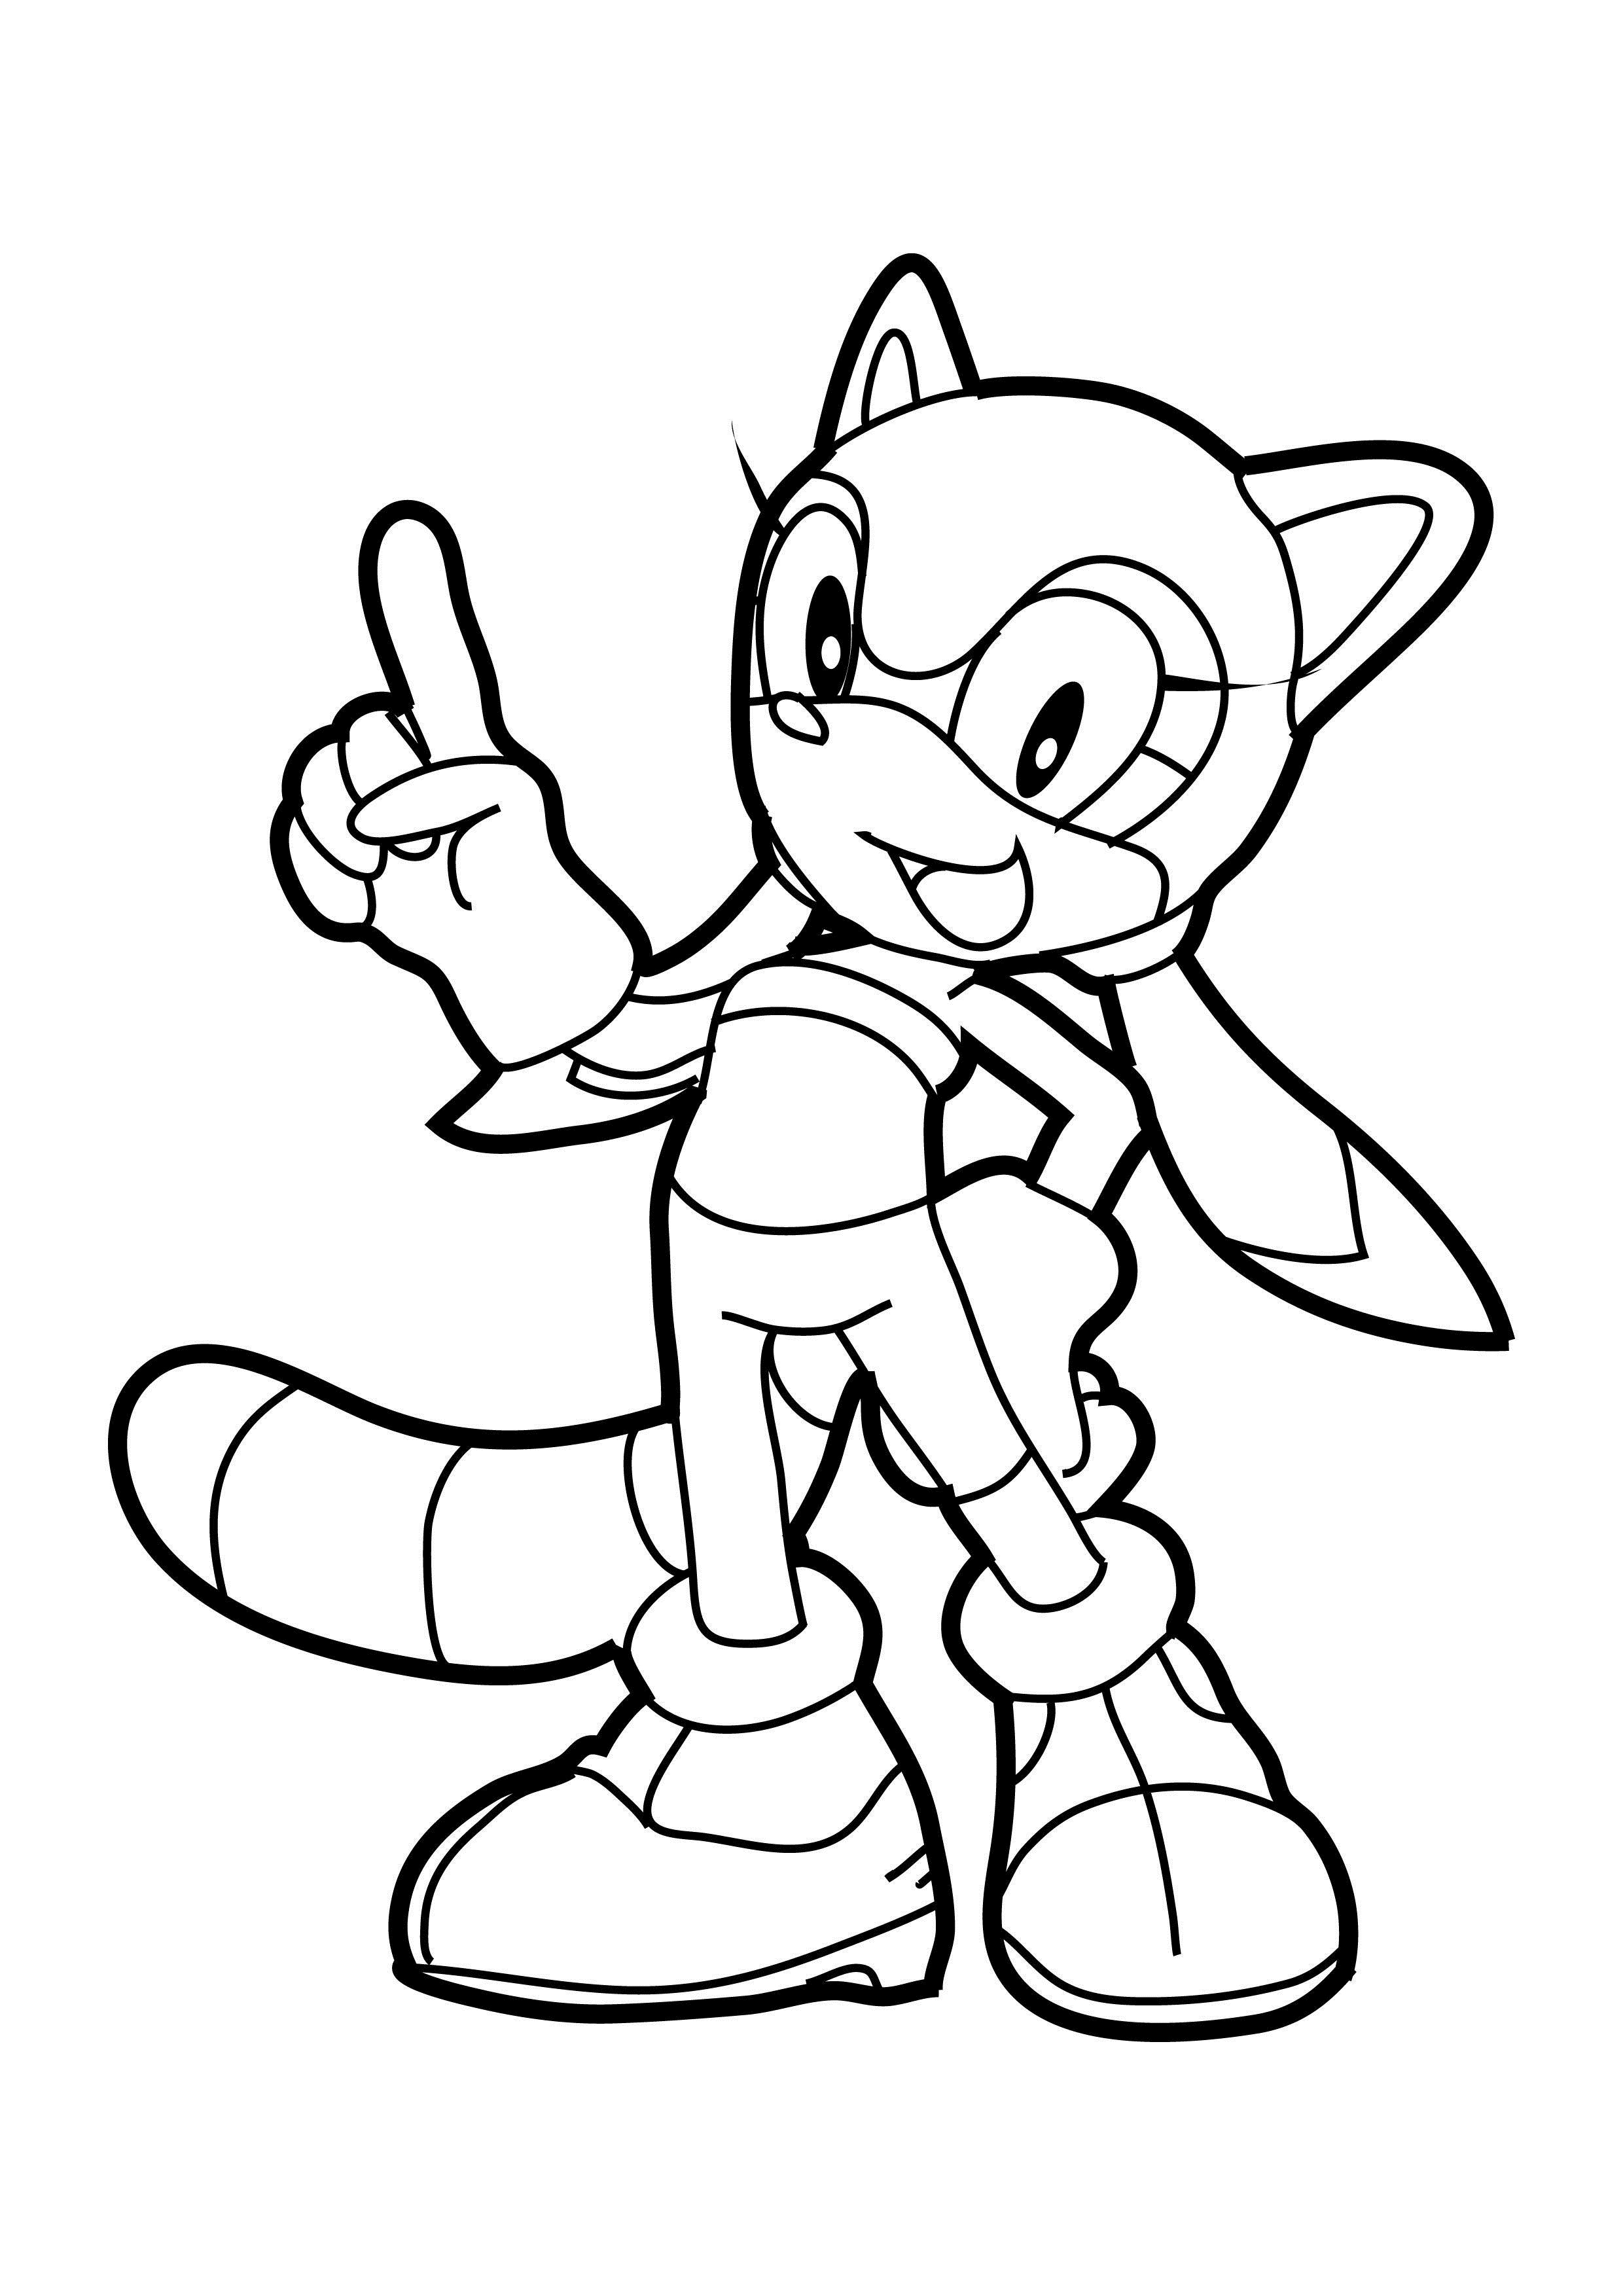 sonic the hedgehog coloring pages coloring sonic hedgehog pages coloring hedgehog the sonic pages